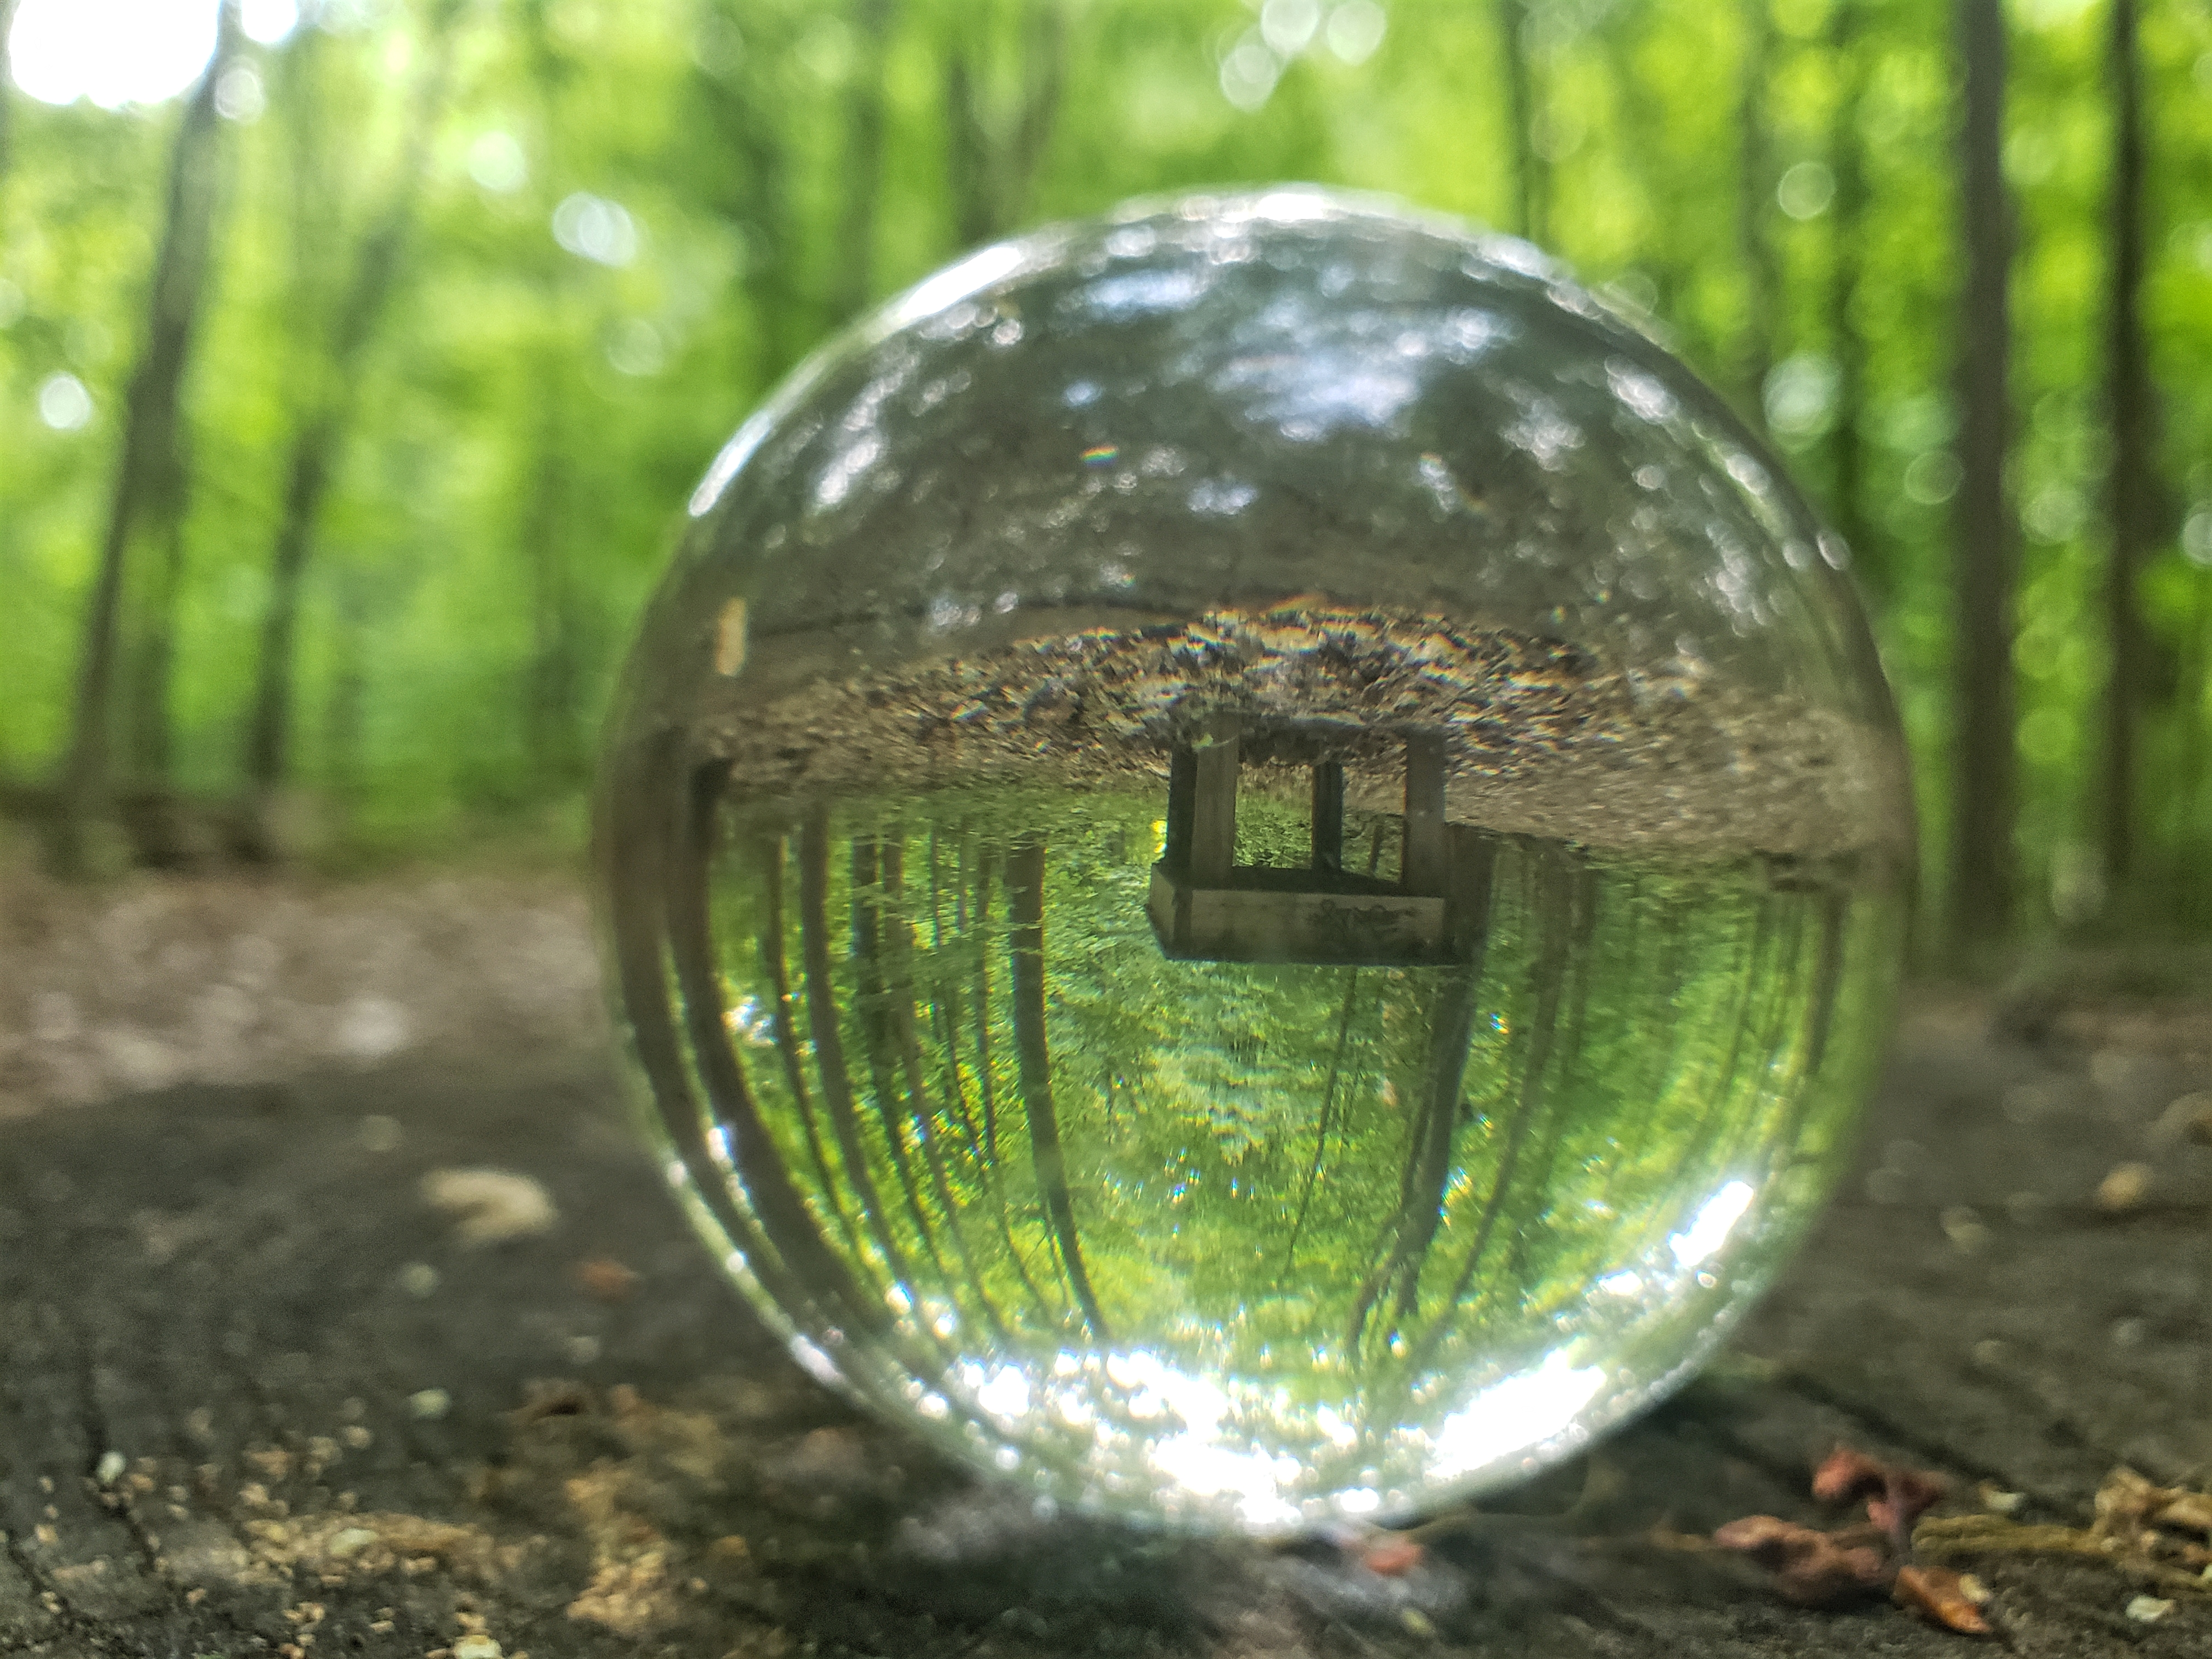 A lens ball that has capture a wood bench in a forest.